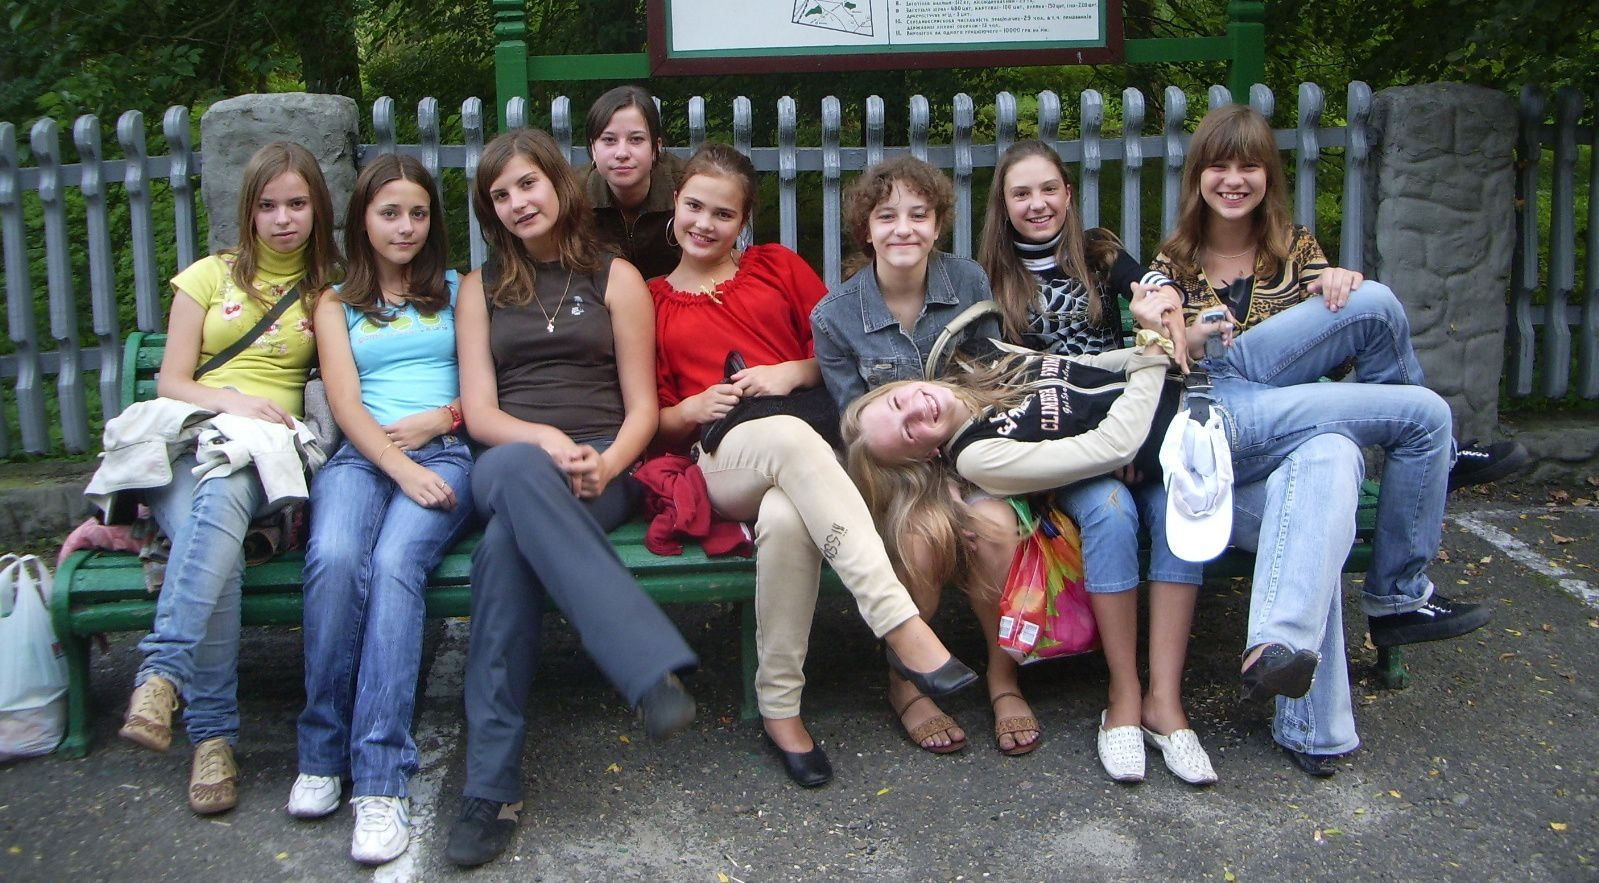 Examples of Ukrainian town's culture